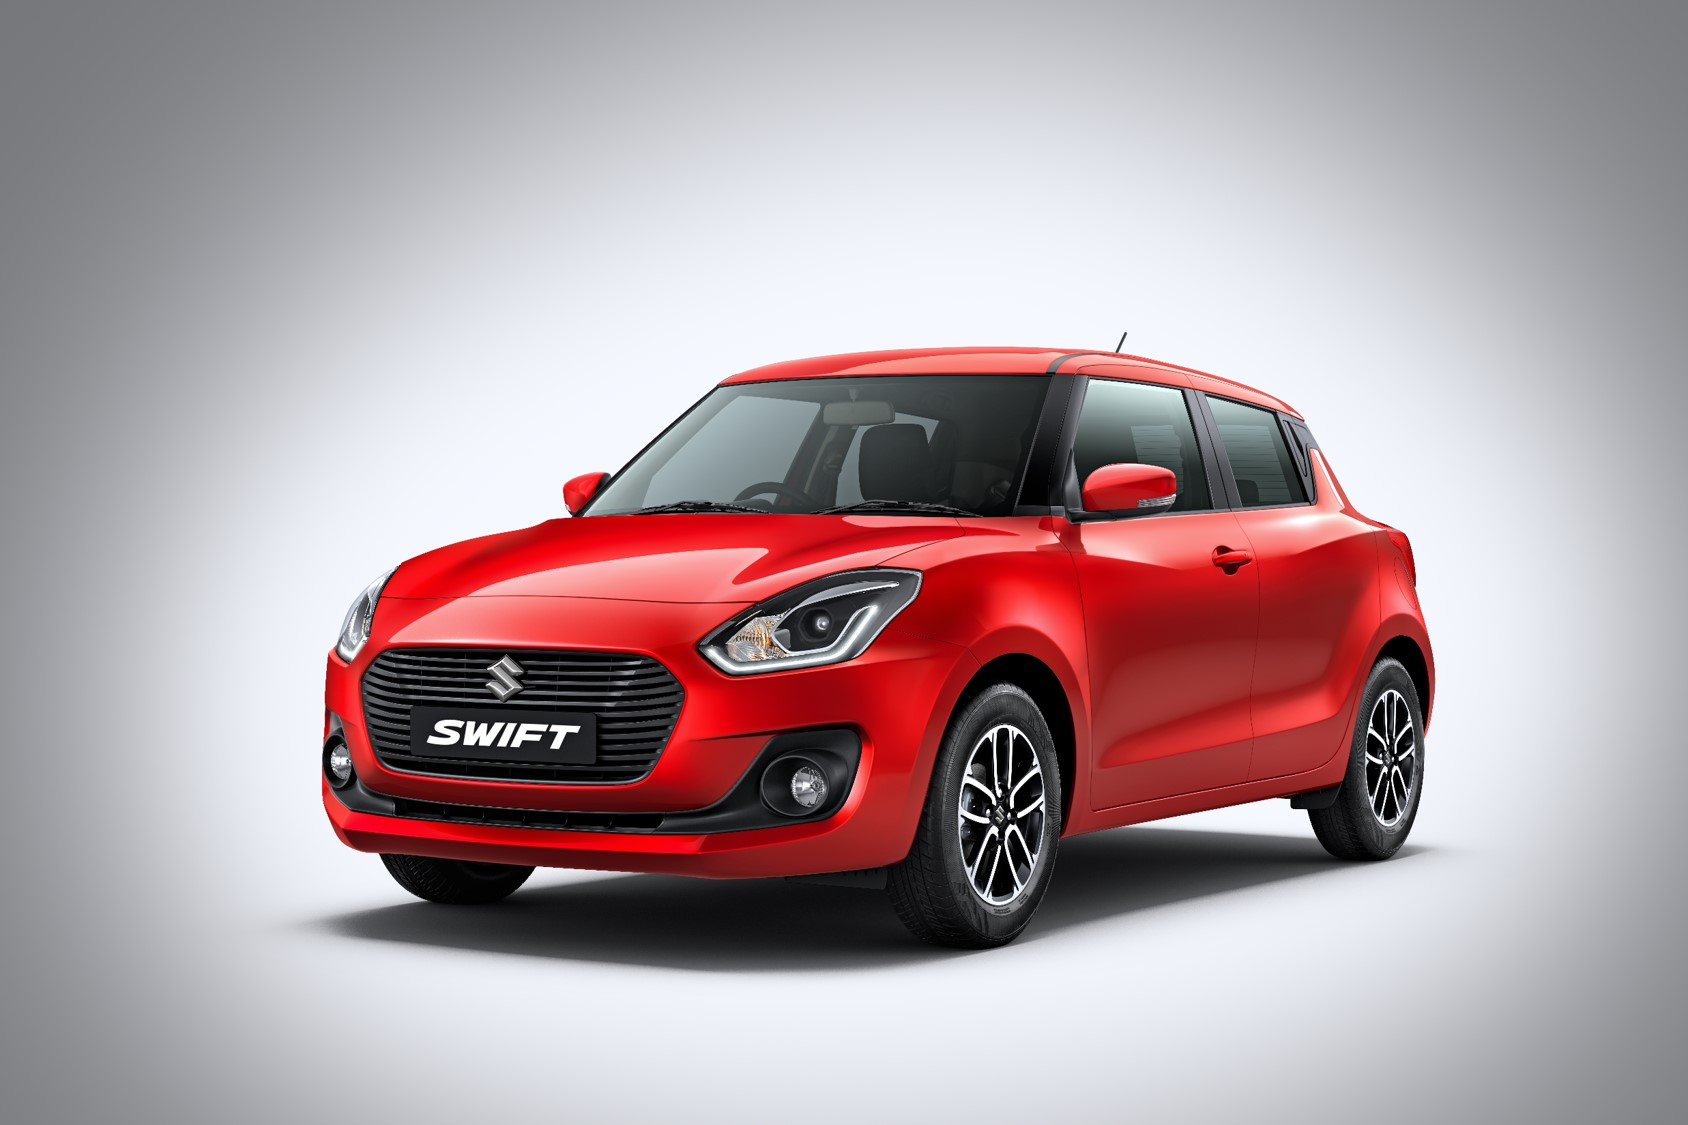 Maruti swift photo - 7